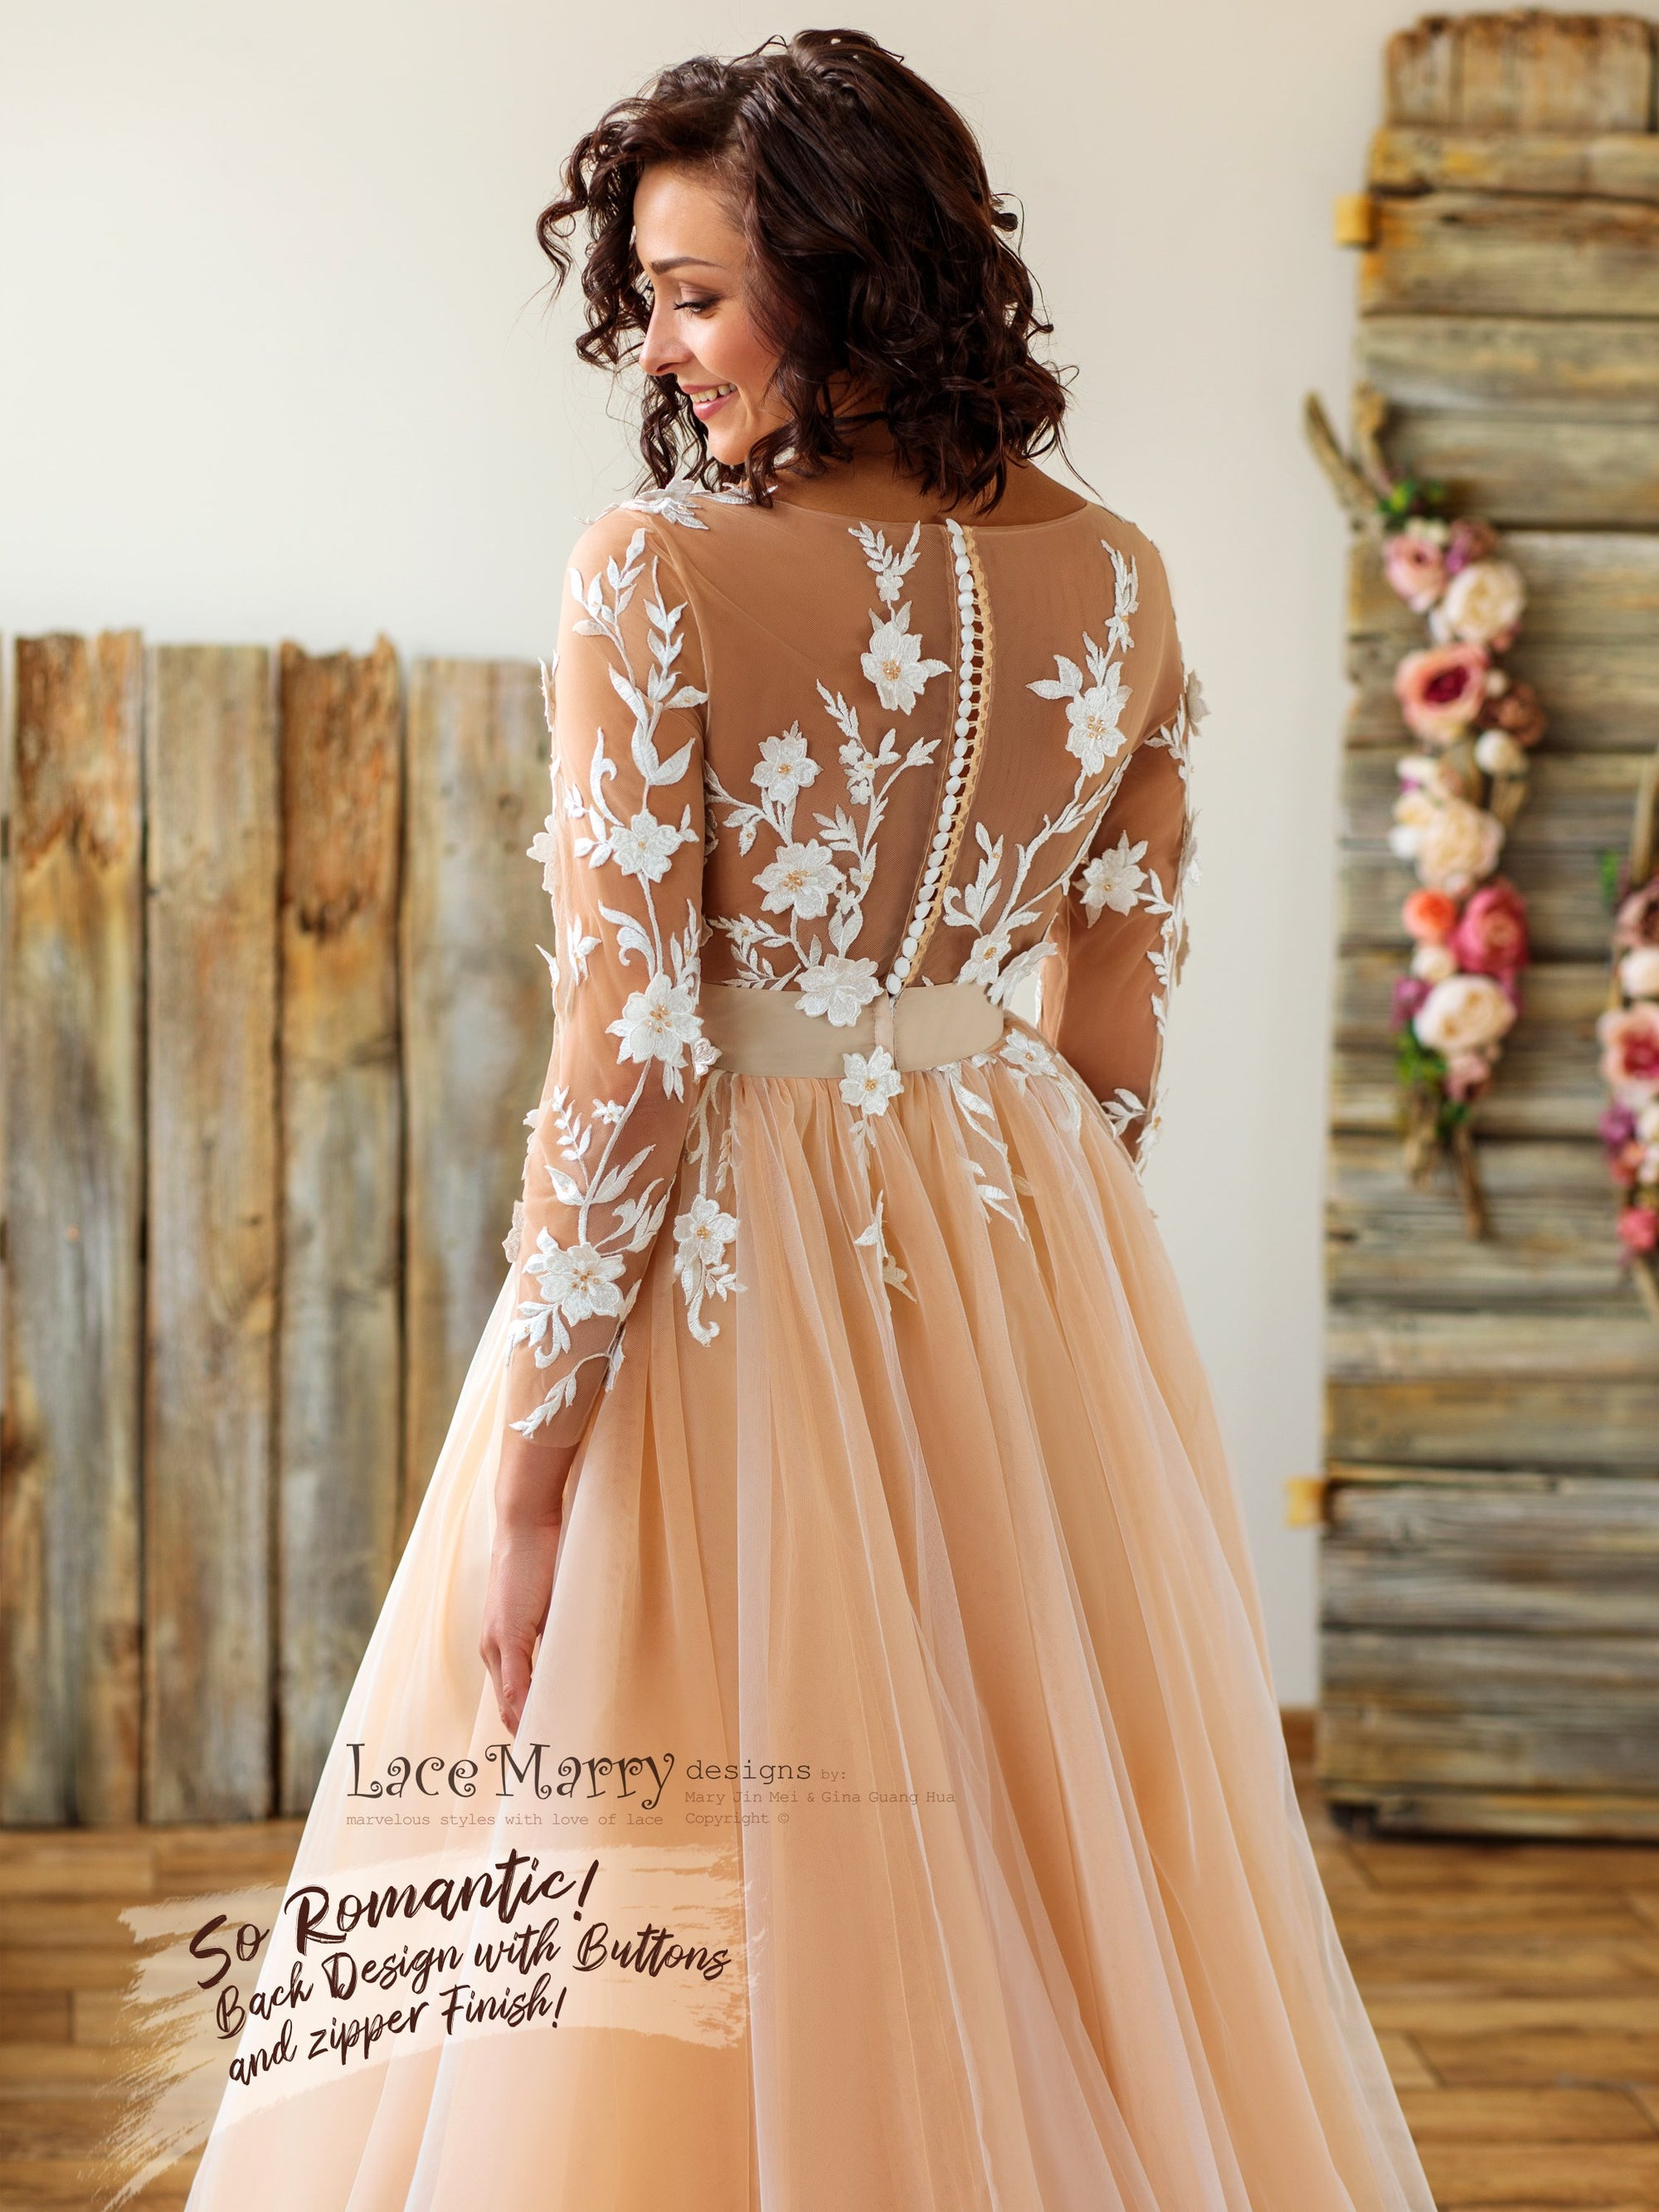 Sexy Boho Wedding Dress with Long Lace Sleeves